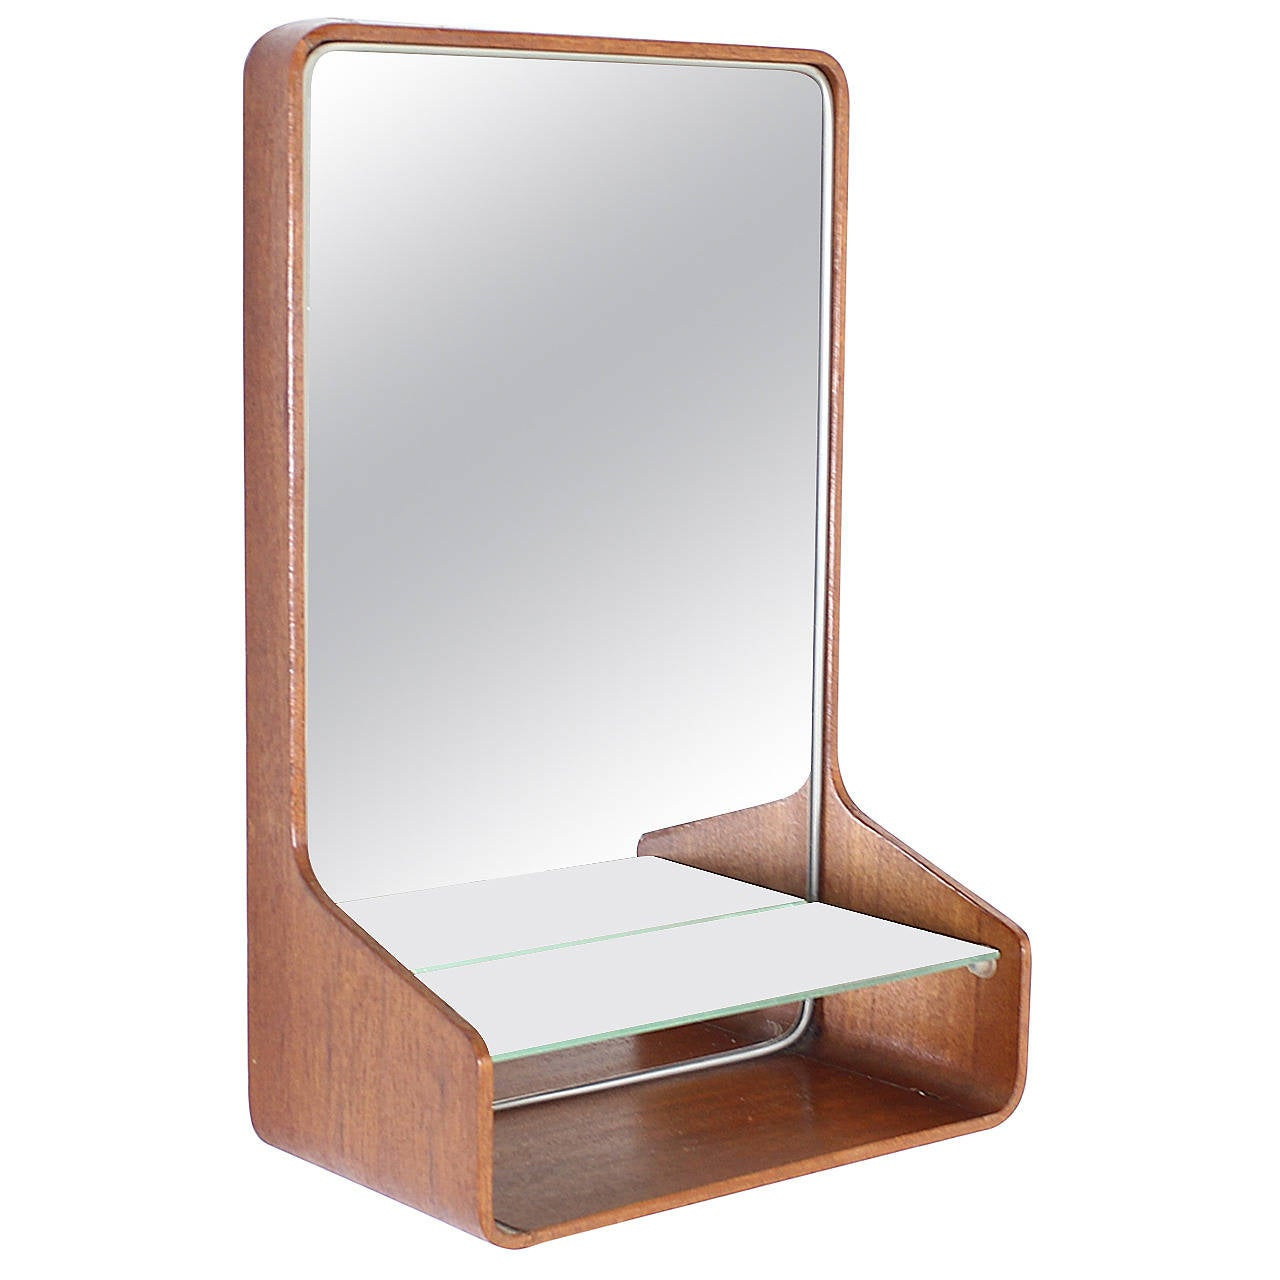 Friso kramer small teak plywood wall mirror for auping for Small wall mirrors